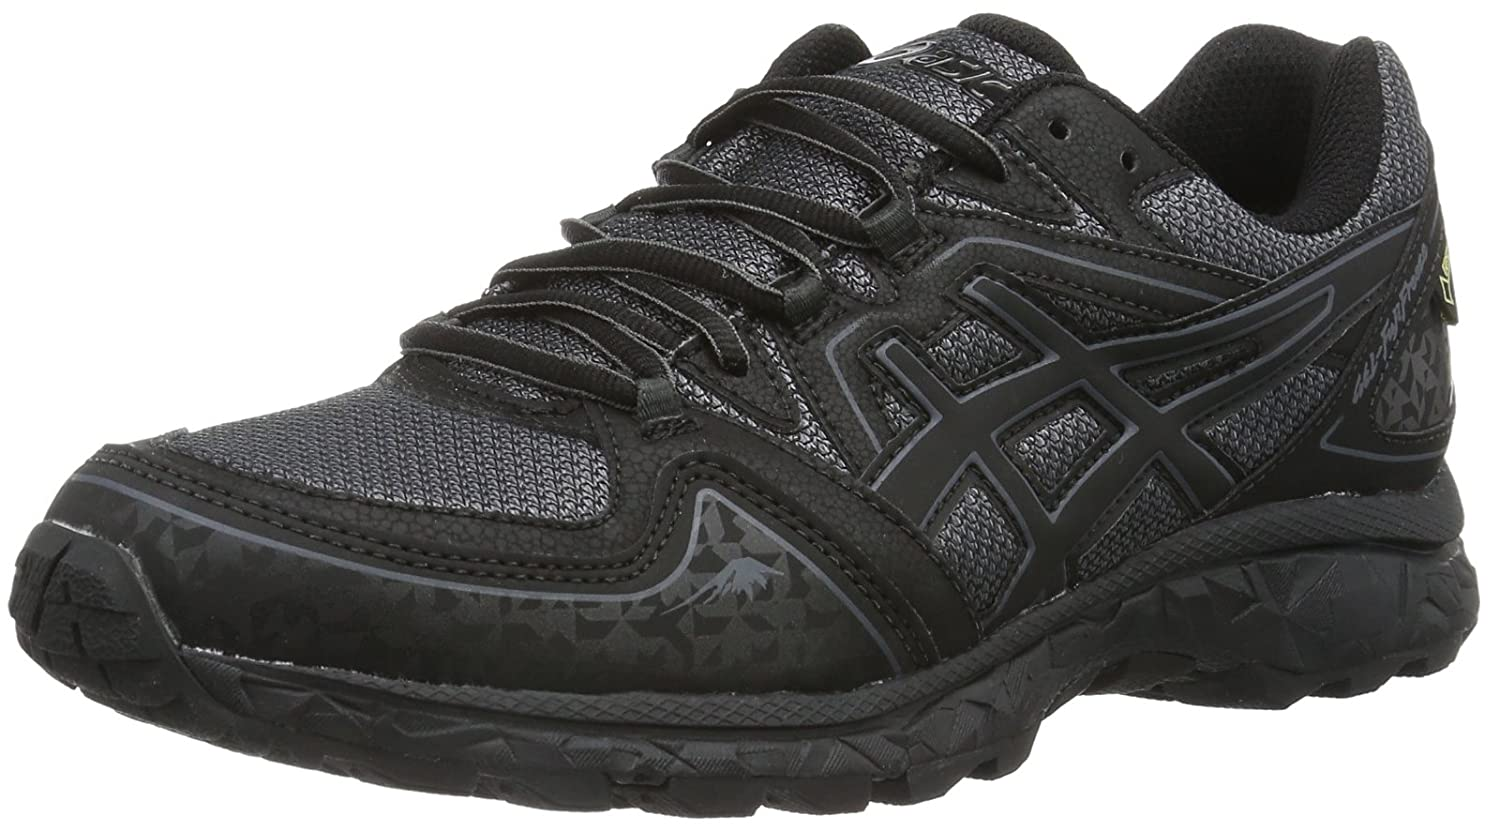 Asics GEL-FUJIFREEZE G-TX Q371N Damen Walkingschuhe